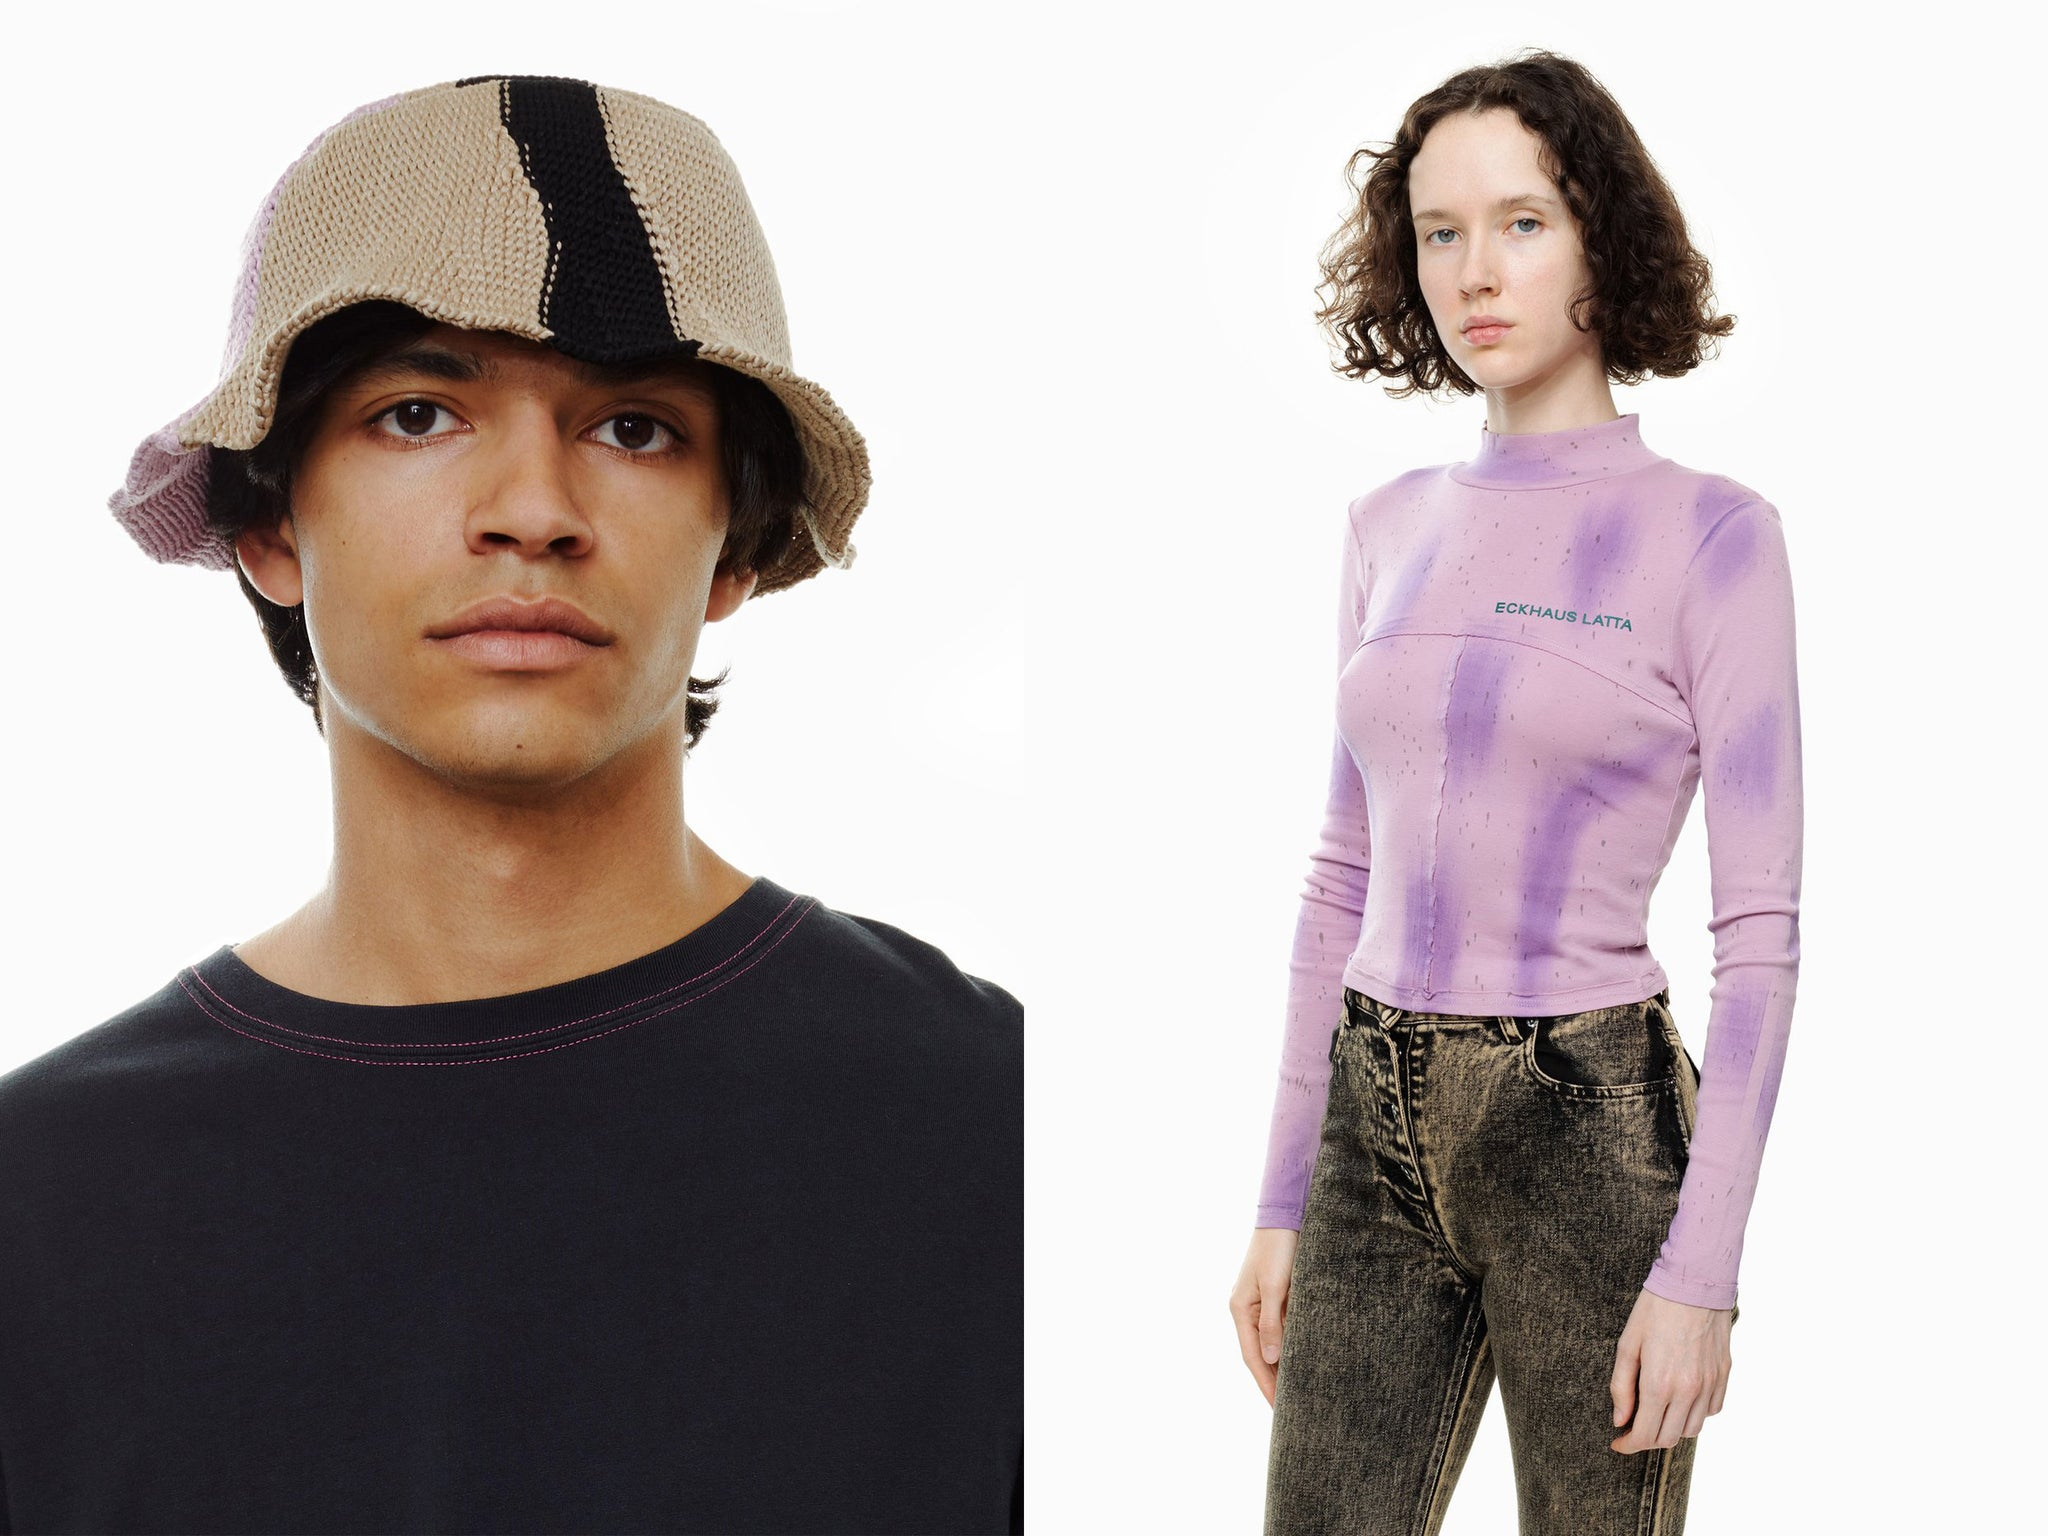 ECKHAUS LATTA AW20 tops and hats